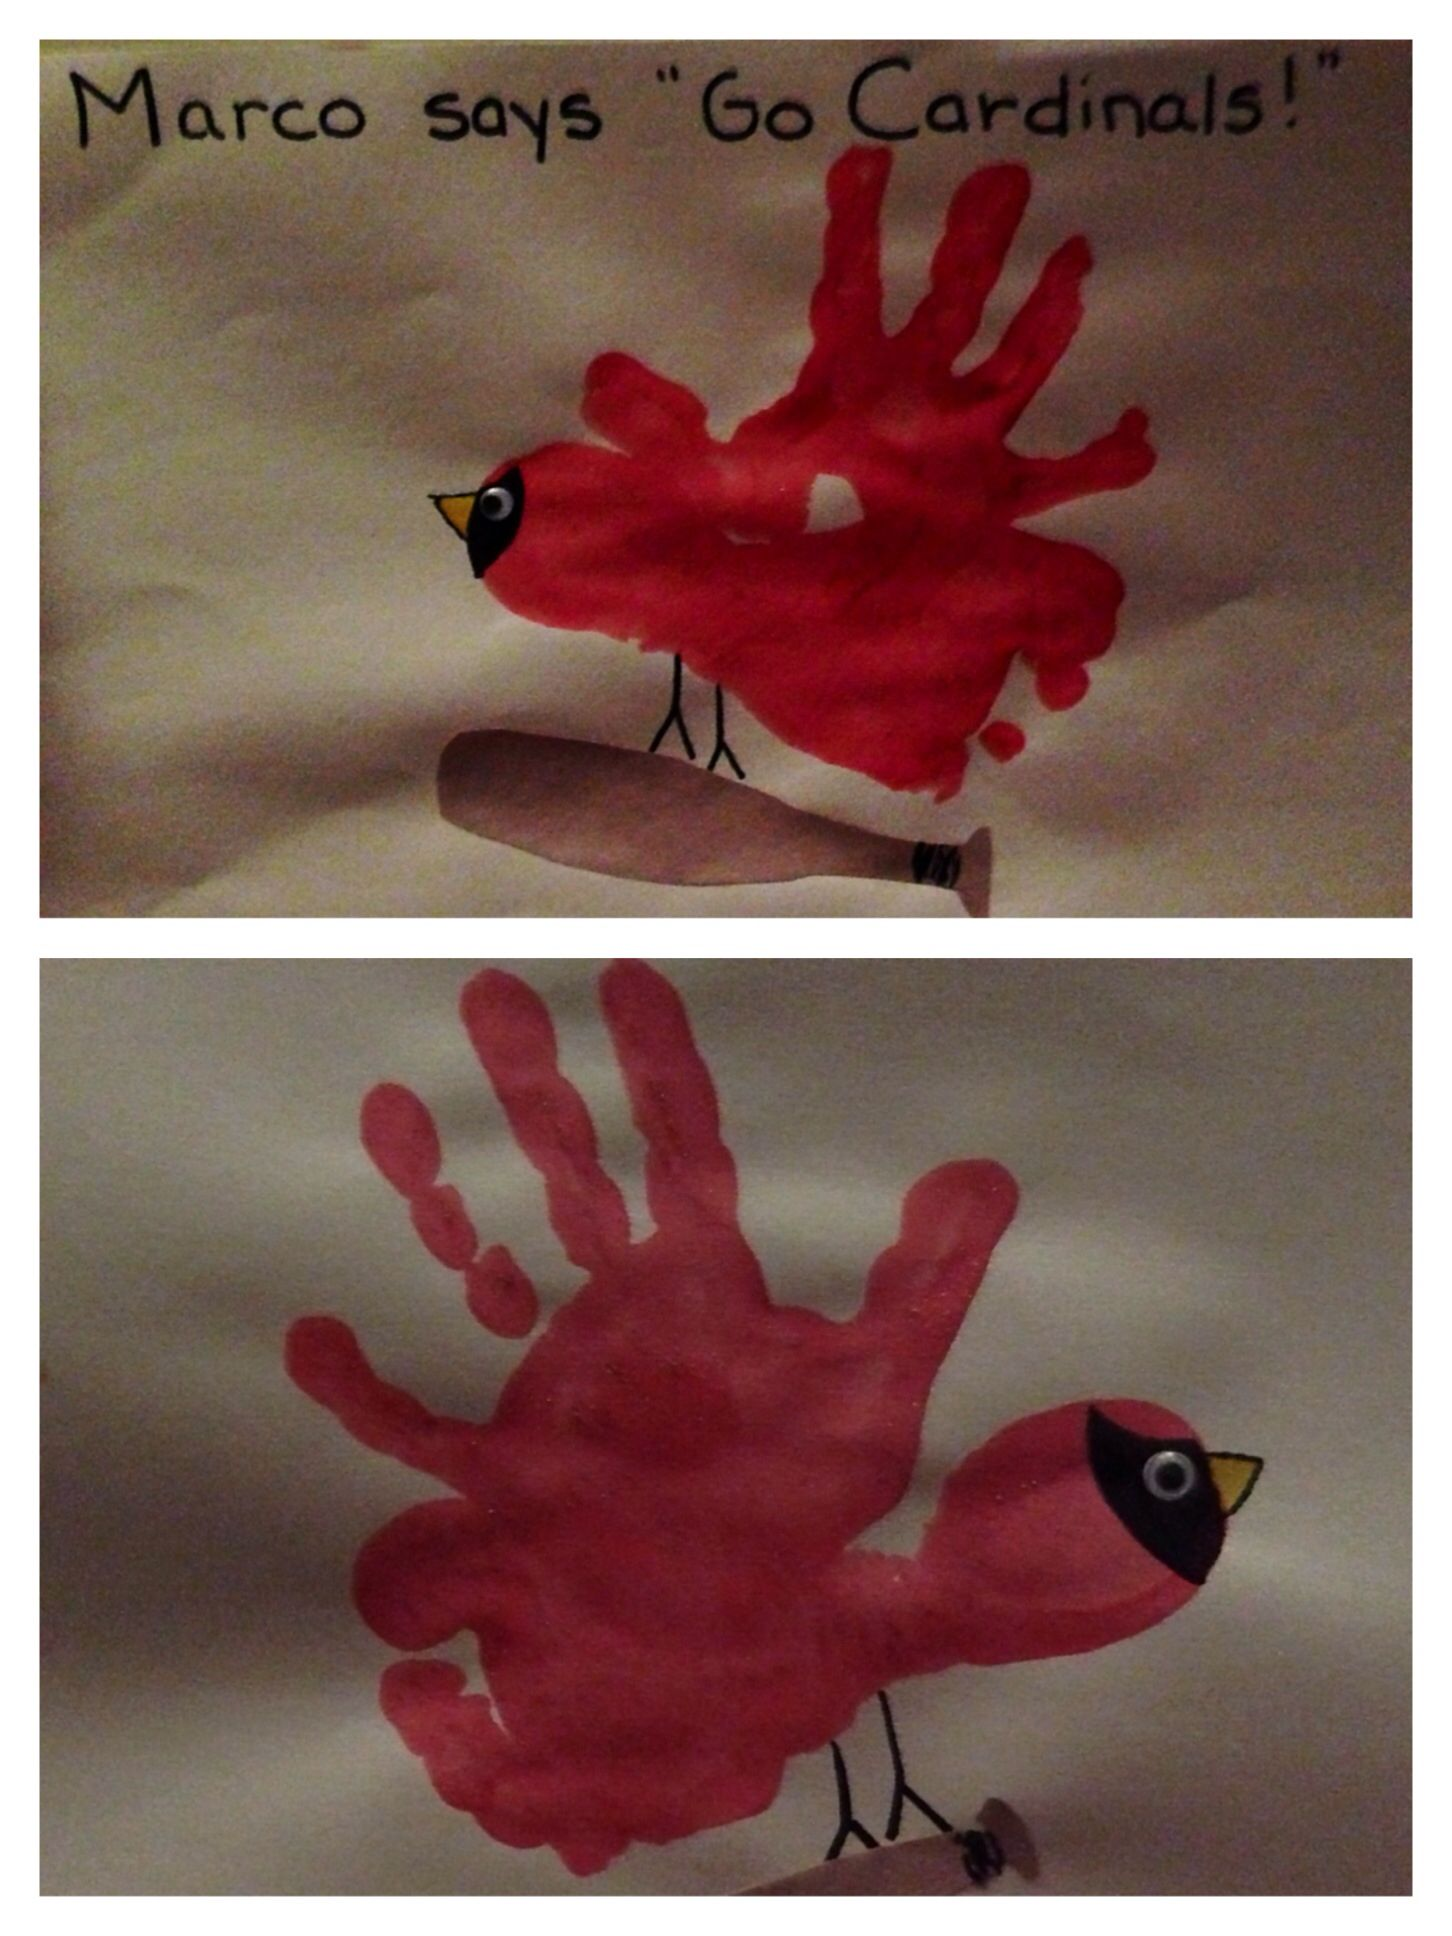 Get ready for Cardinals Opening Day with this cute preschool art project! Simple to do with hand+foot prints, black marker, construction paper, and paint! #mlb #stlcardinals #baseball #cardinals #preschool